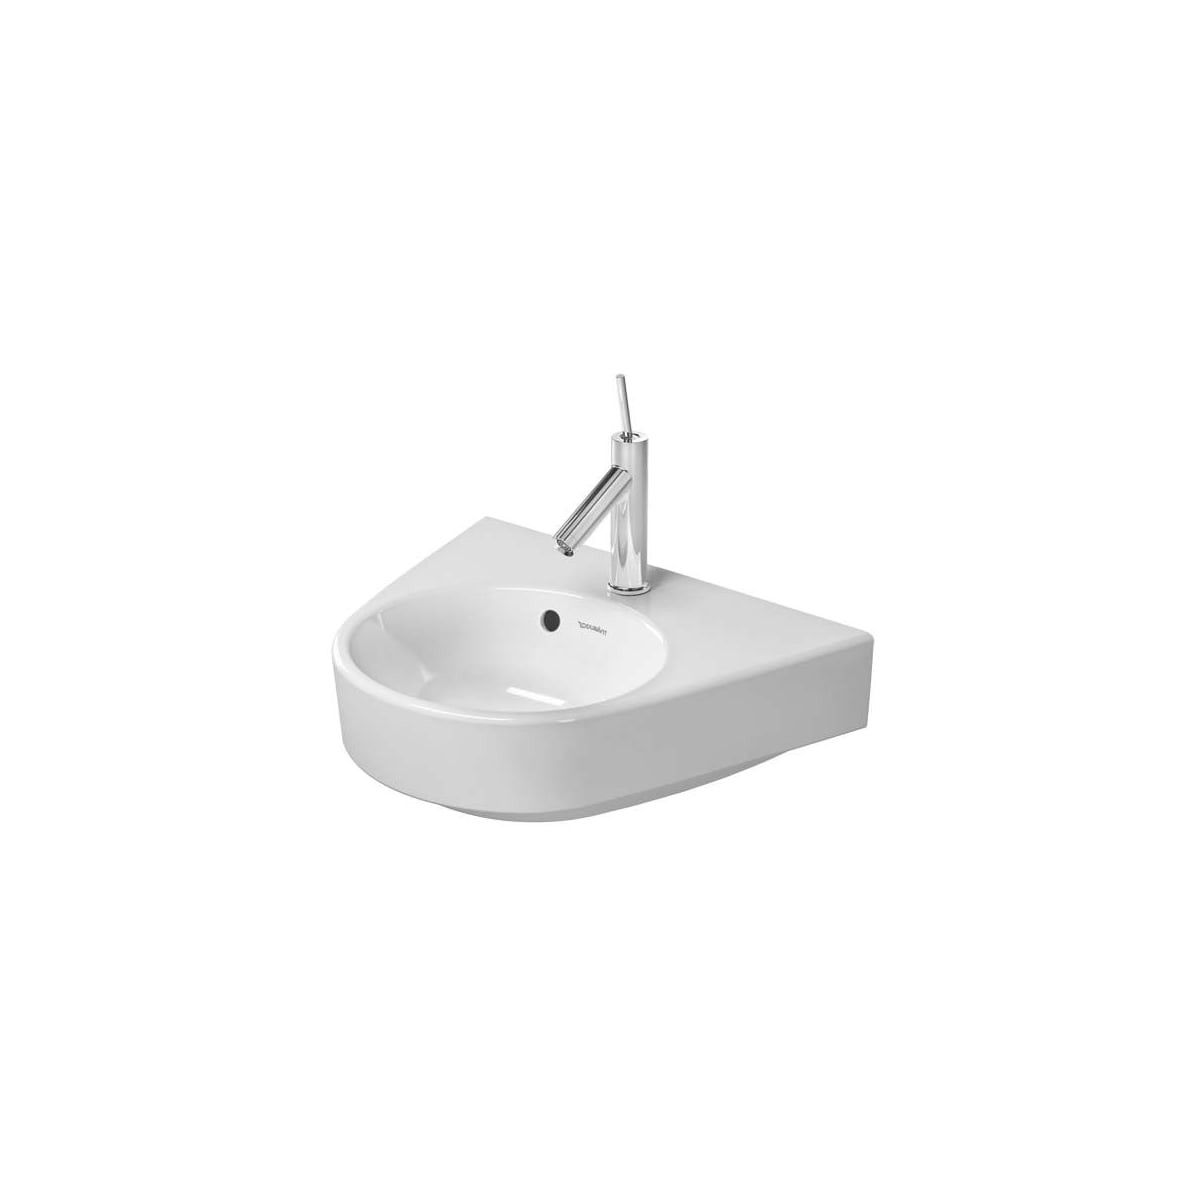 Duravit 0714500000 White Glazed Underside Starck 2 19 5 8 Specialty Ceramic Wall Mounted Bathroom Sink With Overflow And 1 Faucet Hole Faucet Com